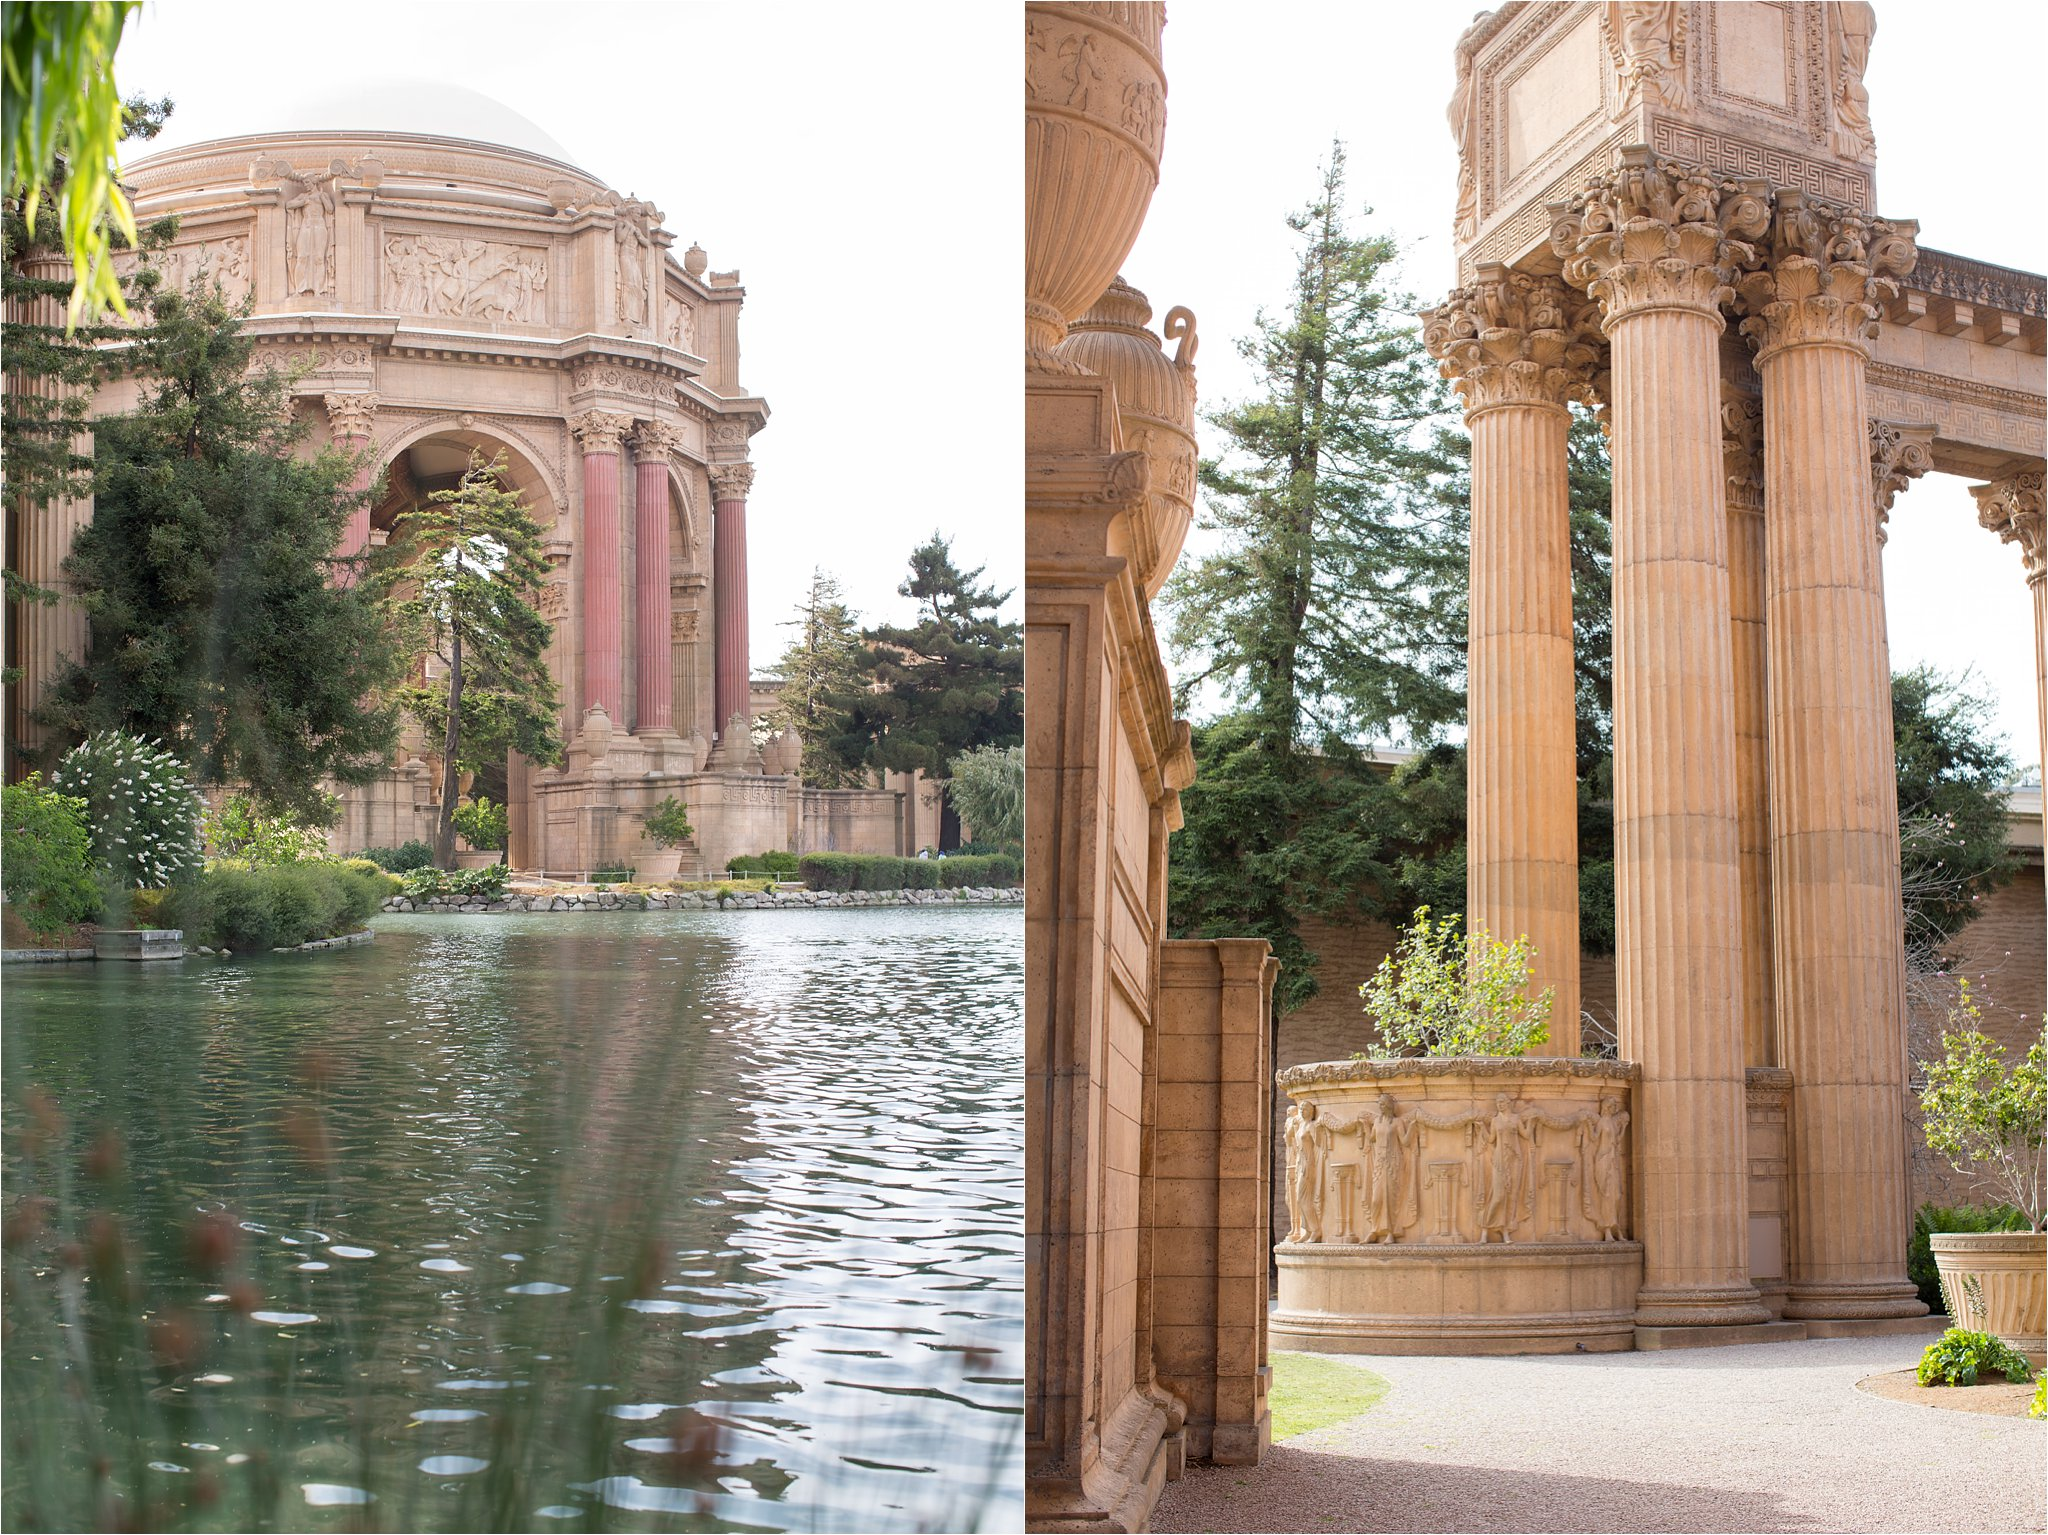 Palace of Fine Arts Pond and Columns